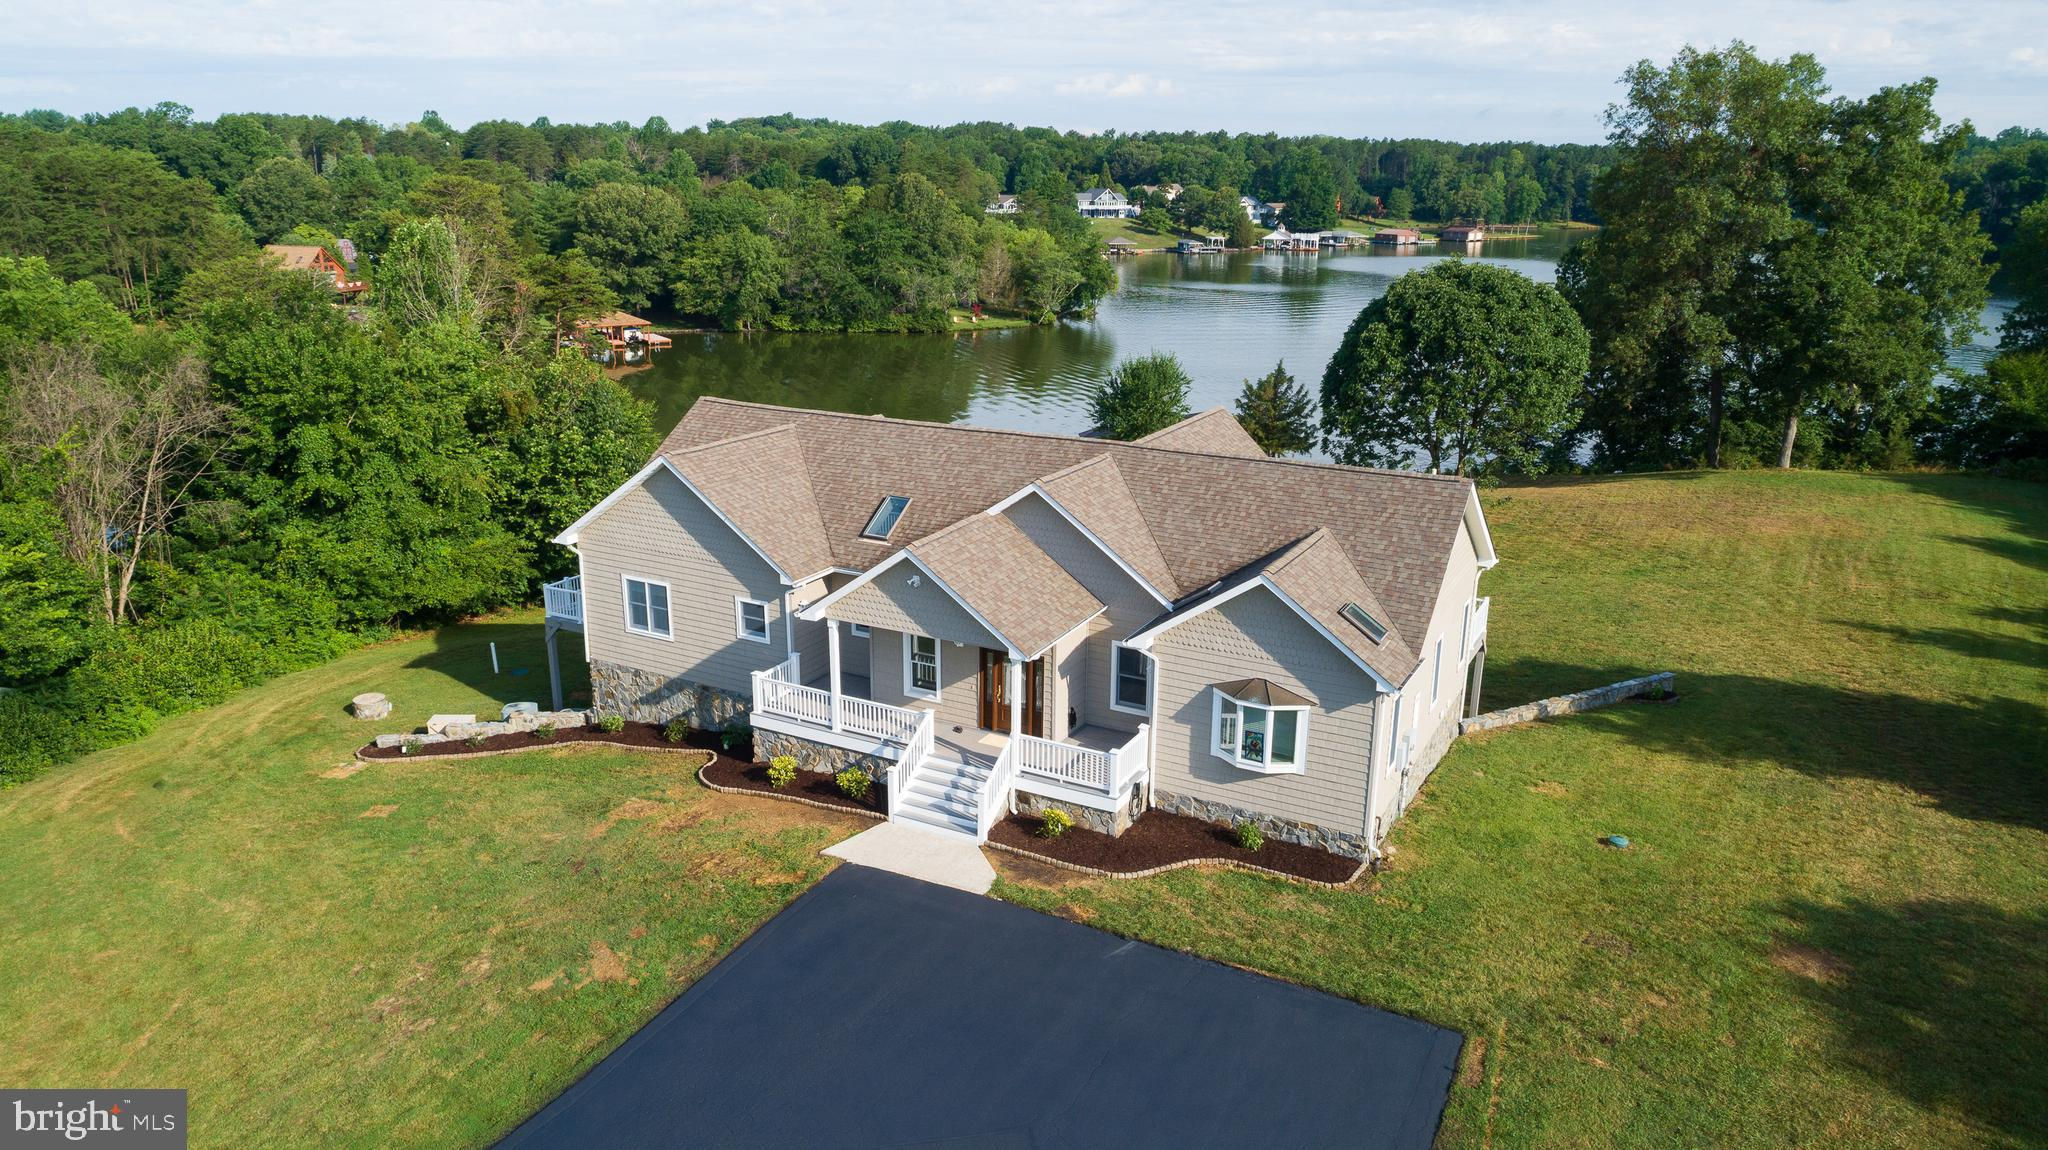 16221 Hickory Cut Lane, Mineral, VA 23117 now has a new price of $1,925,000!